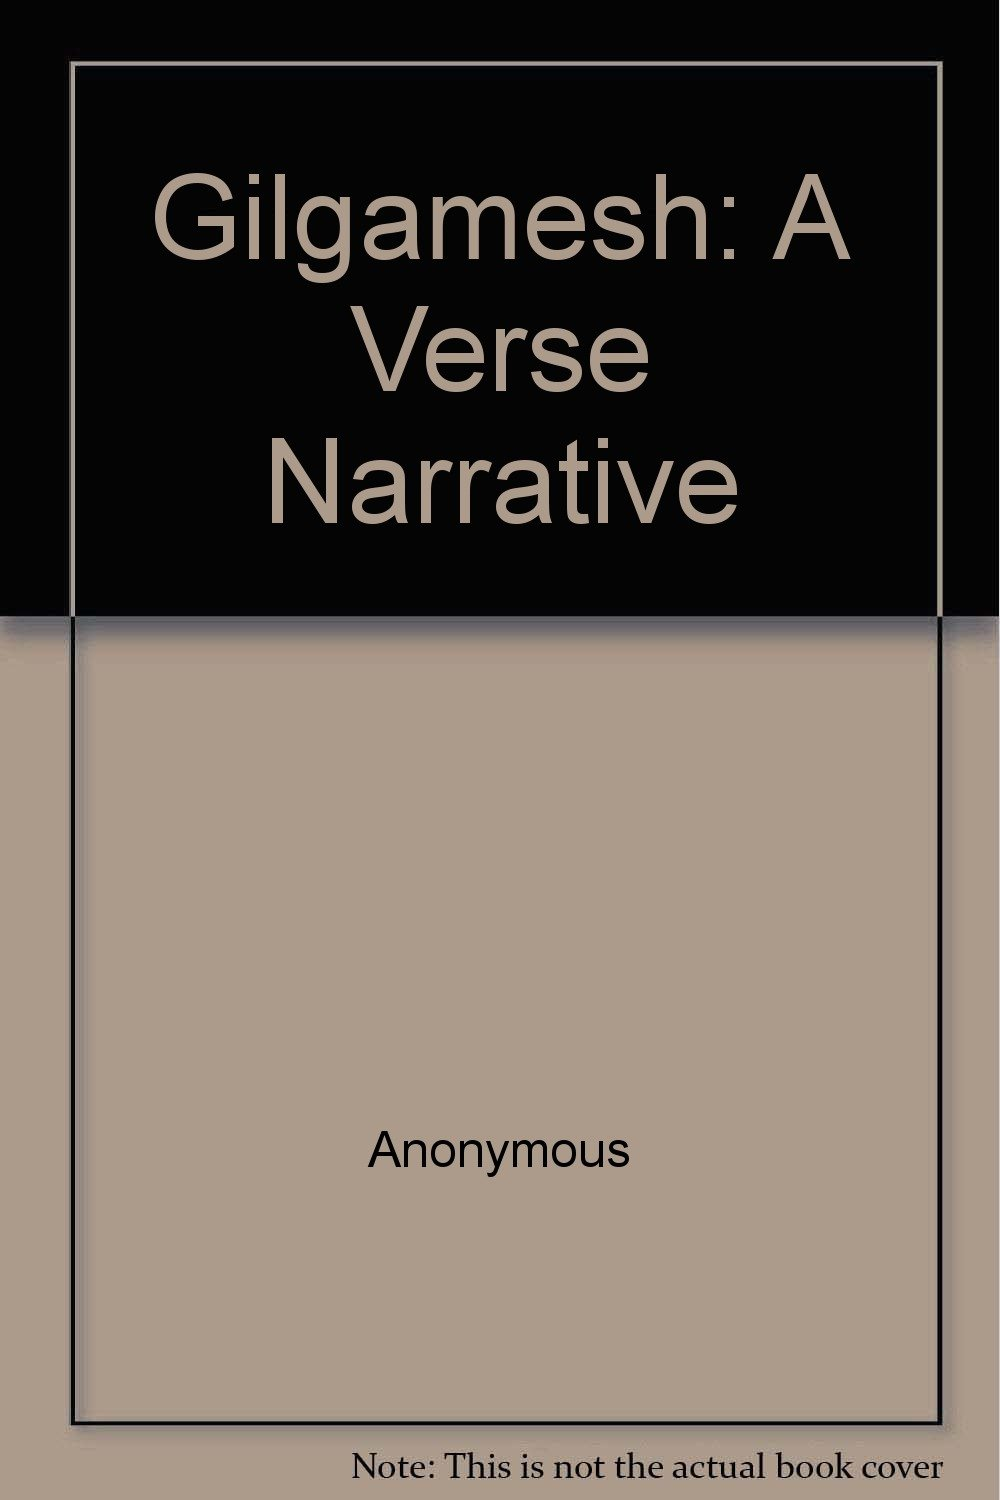 Buy Gilgamesh: A Verse Narrative Book Online at Low Prices in India |  Gilgamesh: A Verse Narrative Reviews & Ratings - Amazon.in